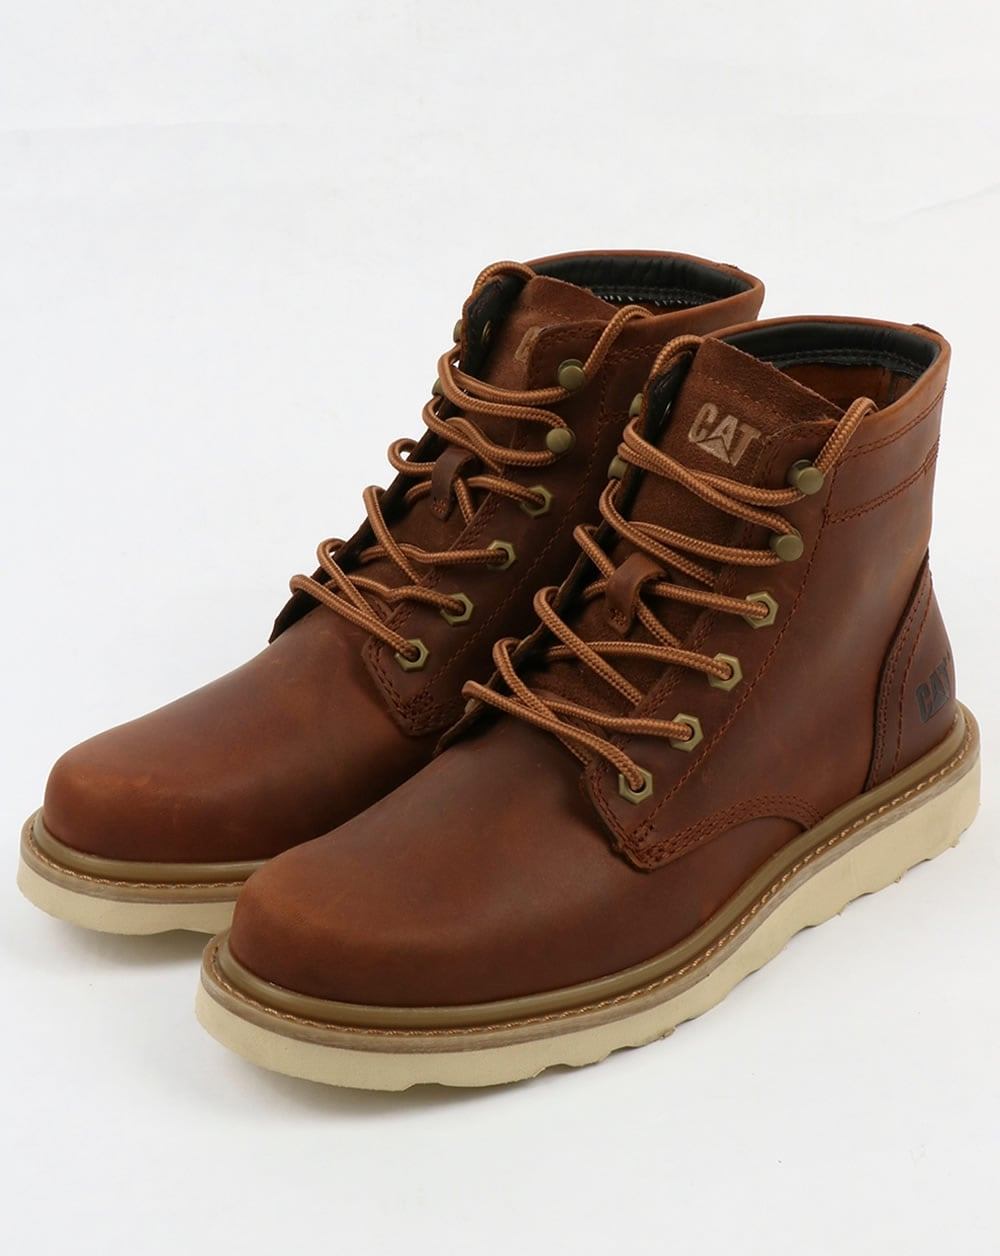 Caterpillar Chronicle Leather Boots Brown Rugged Durable Shoes